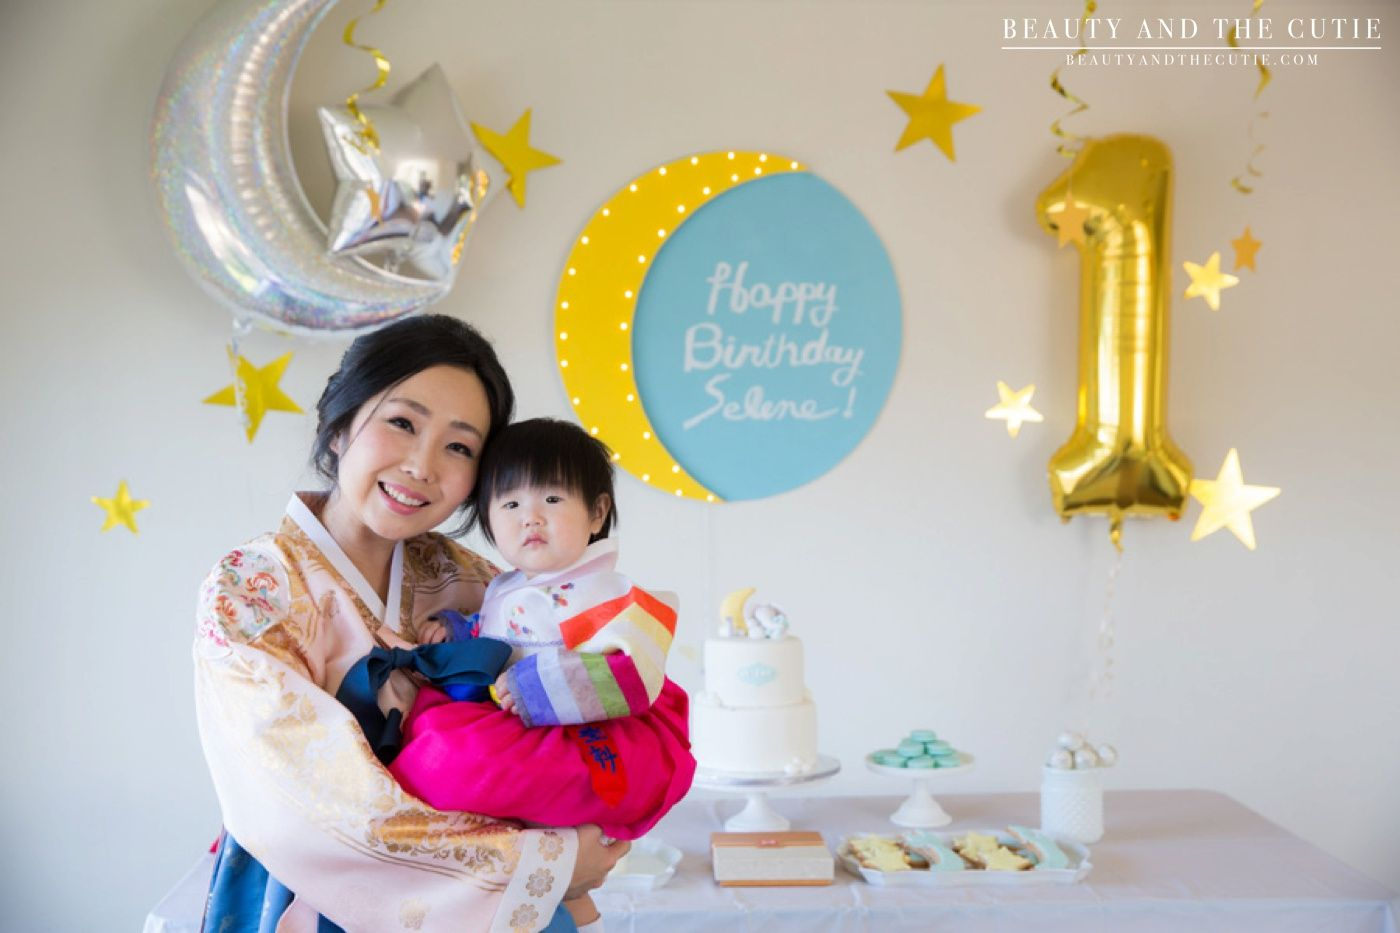 San Francisco Bay Area 1 Year Old Korean Birthday Party Children Family Photographer By Beauty And Korean Birthday Childrens Birthday Party Japanese Birthday